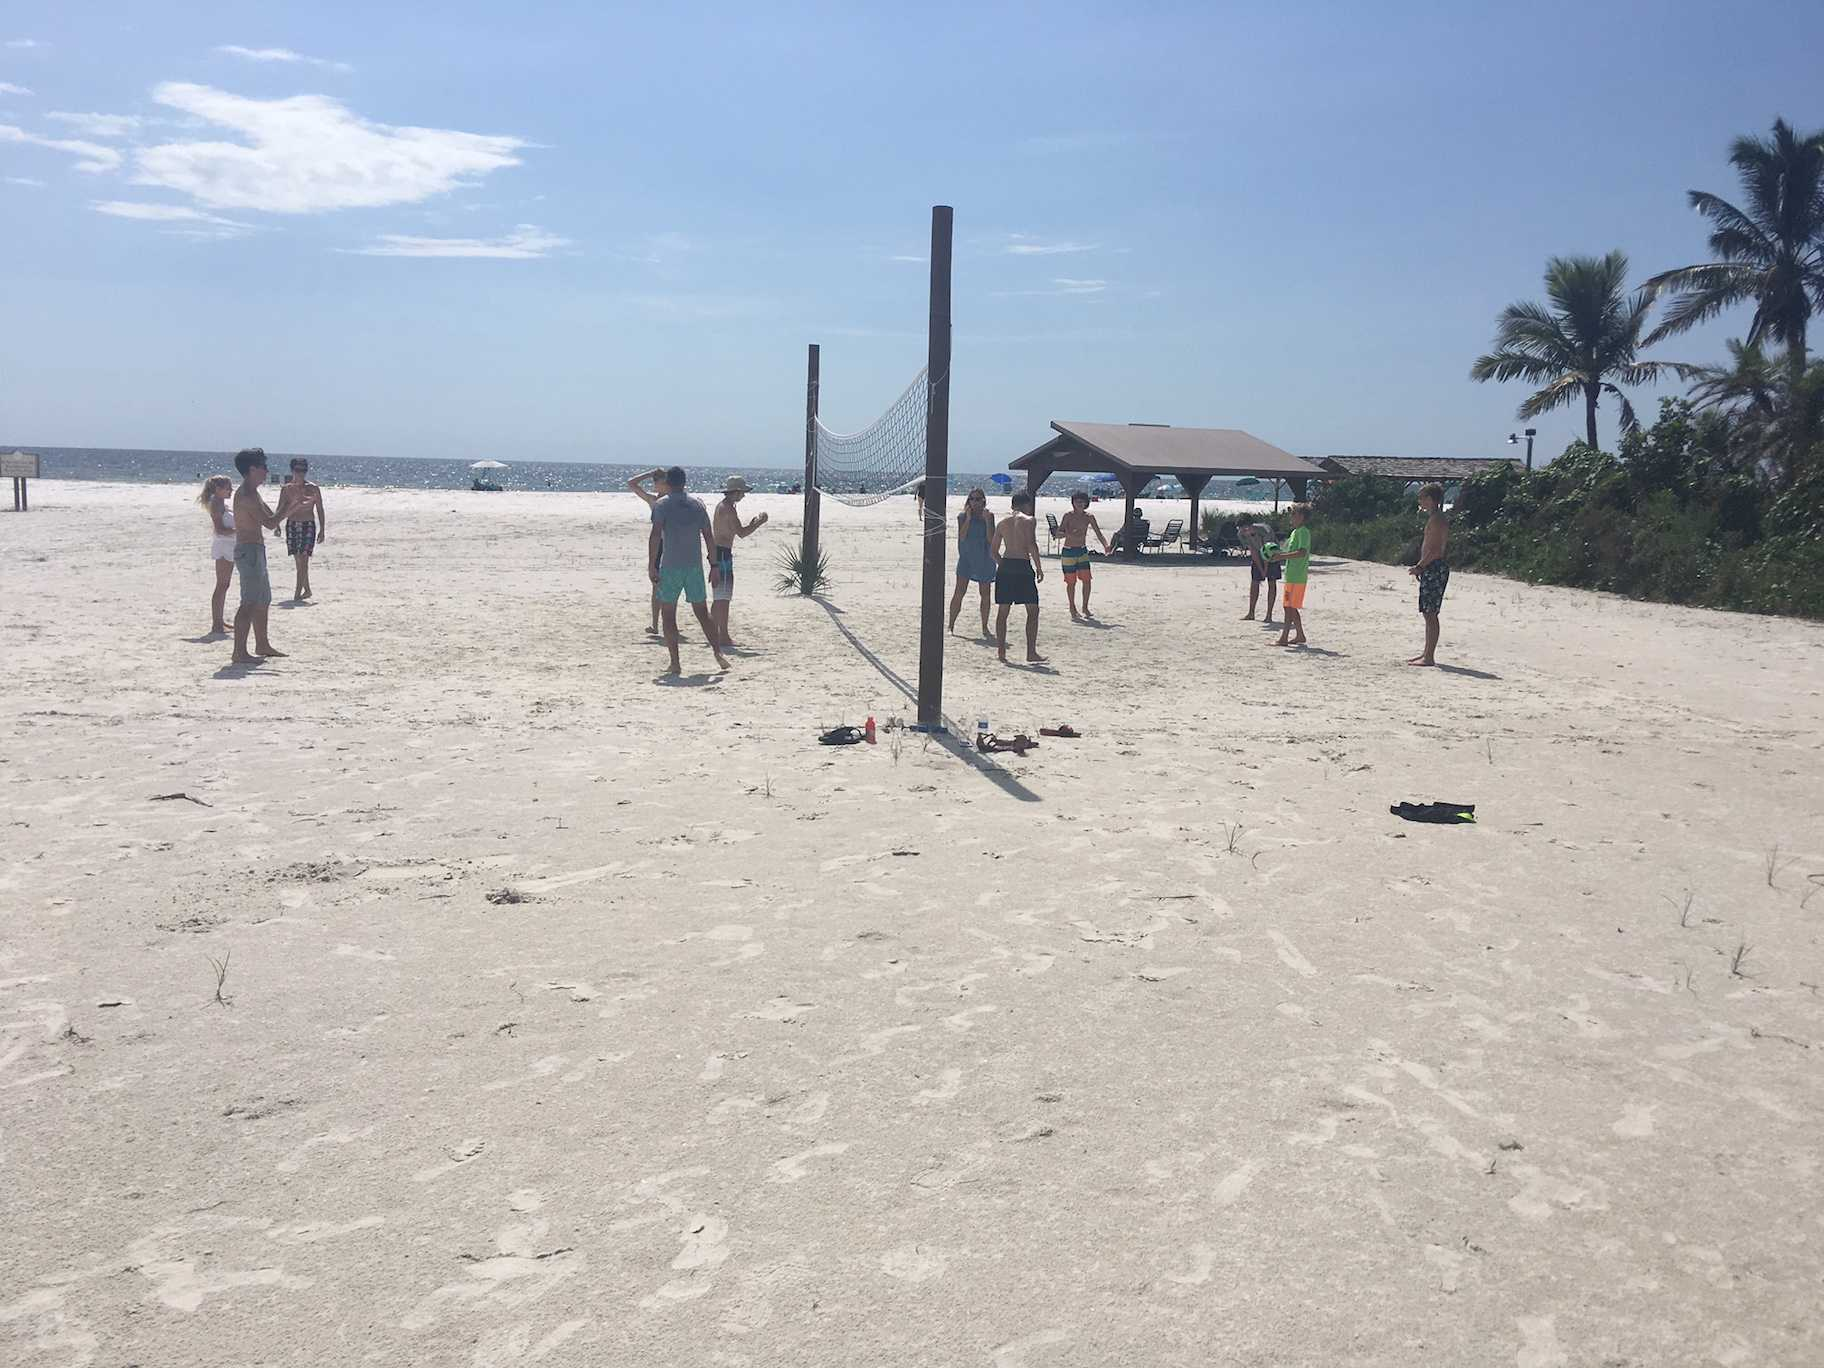 The runners and coaches of the ODA Cross Country team play a heated game of volleyball on the beach.